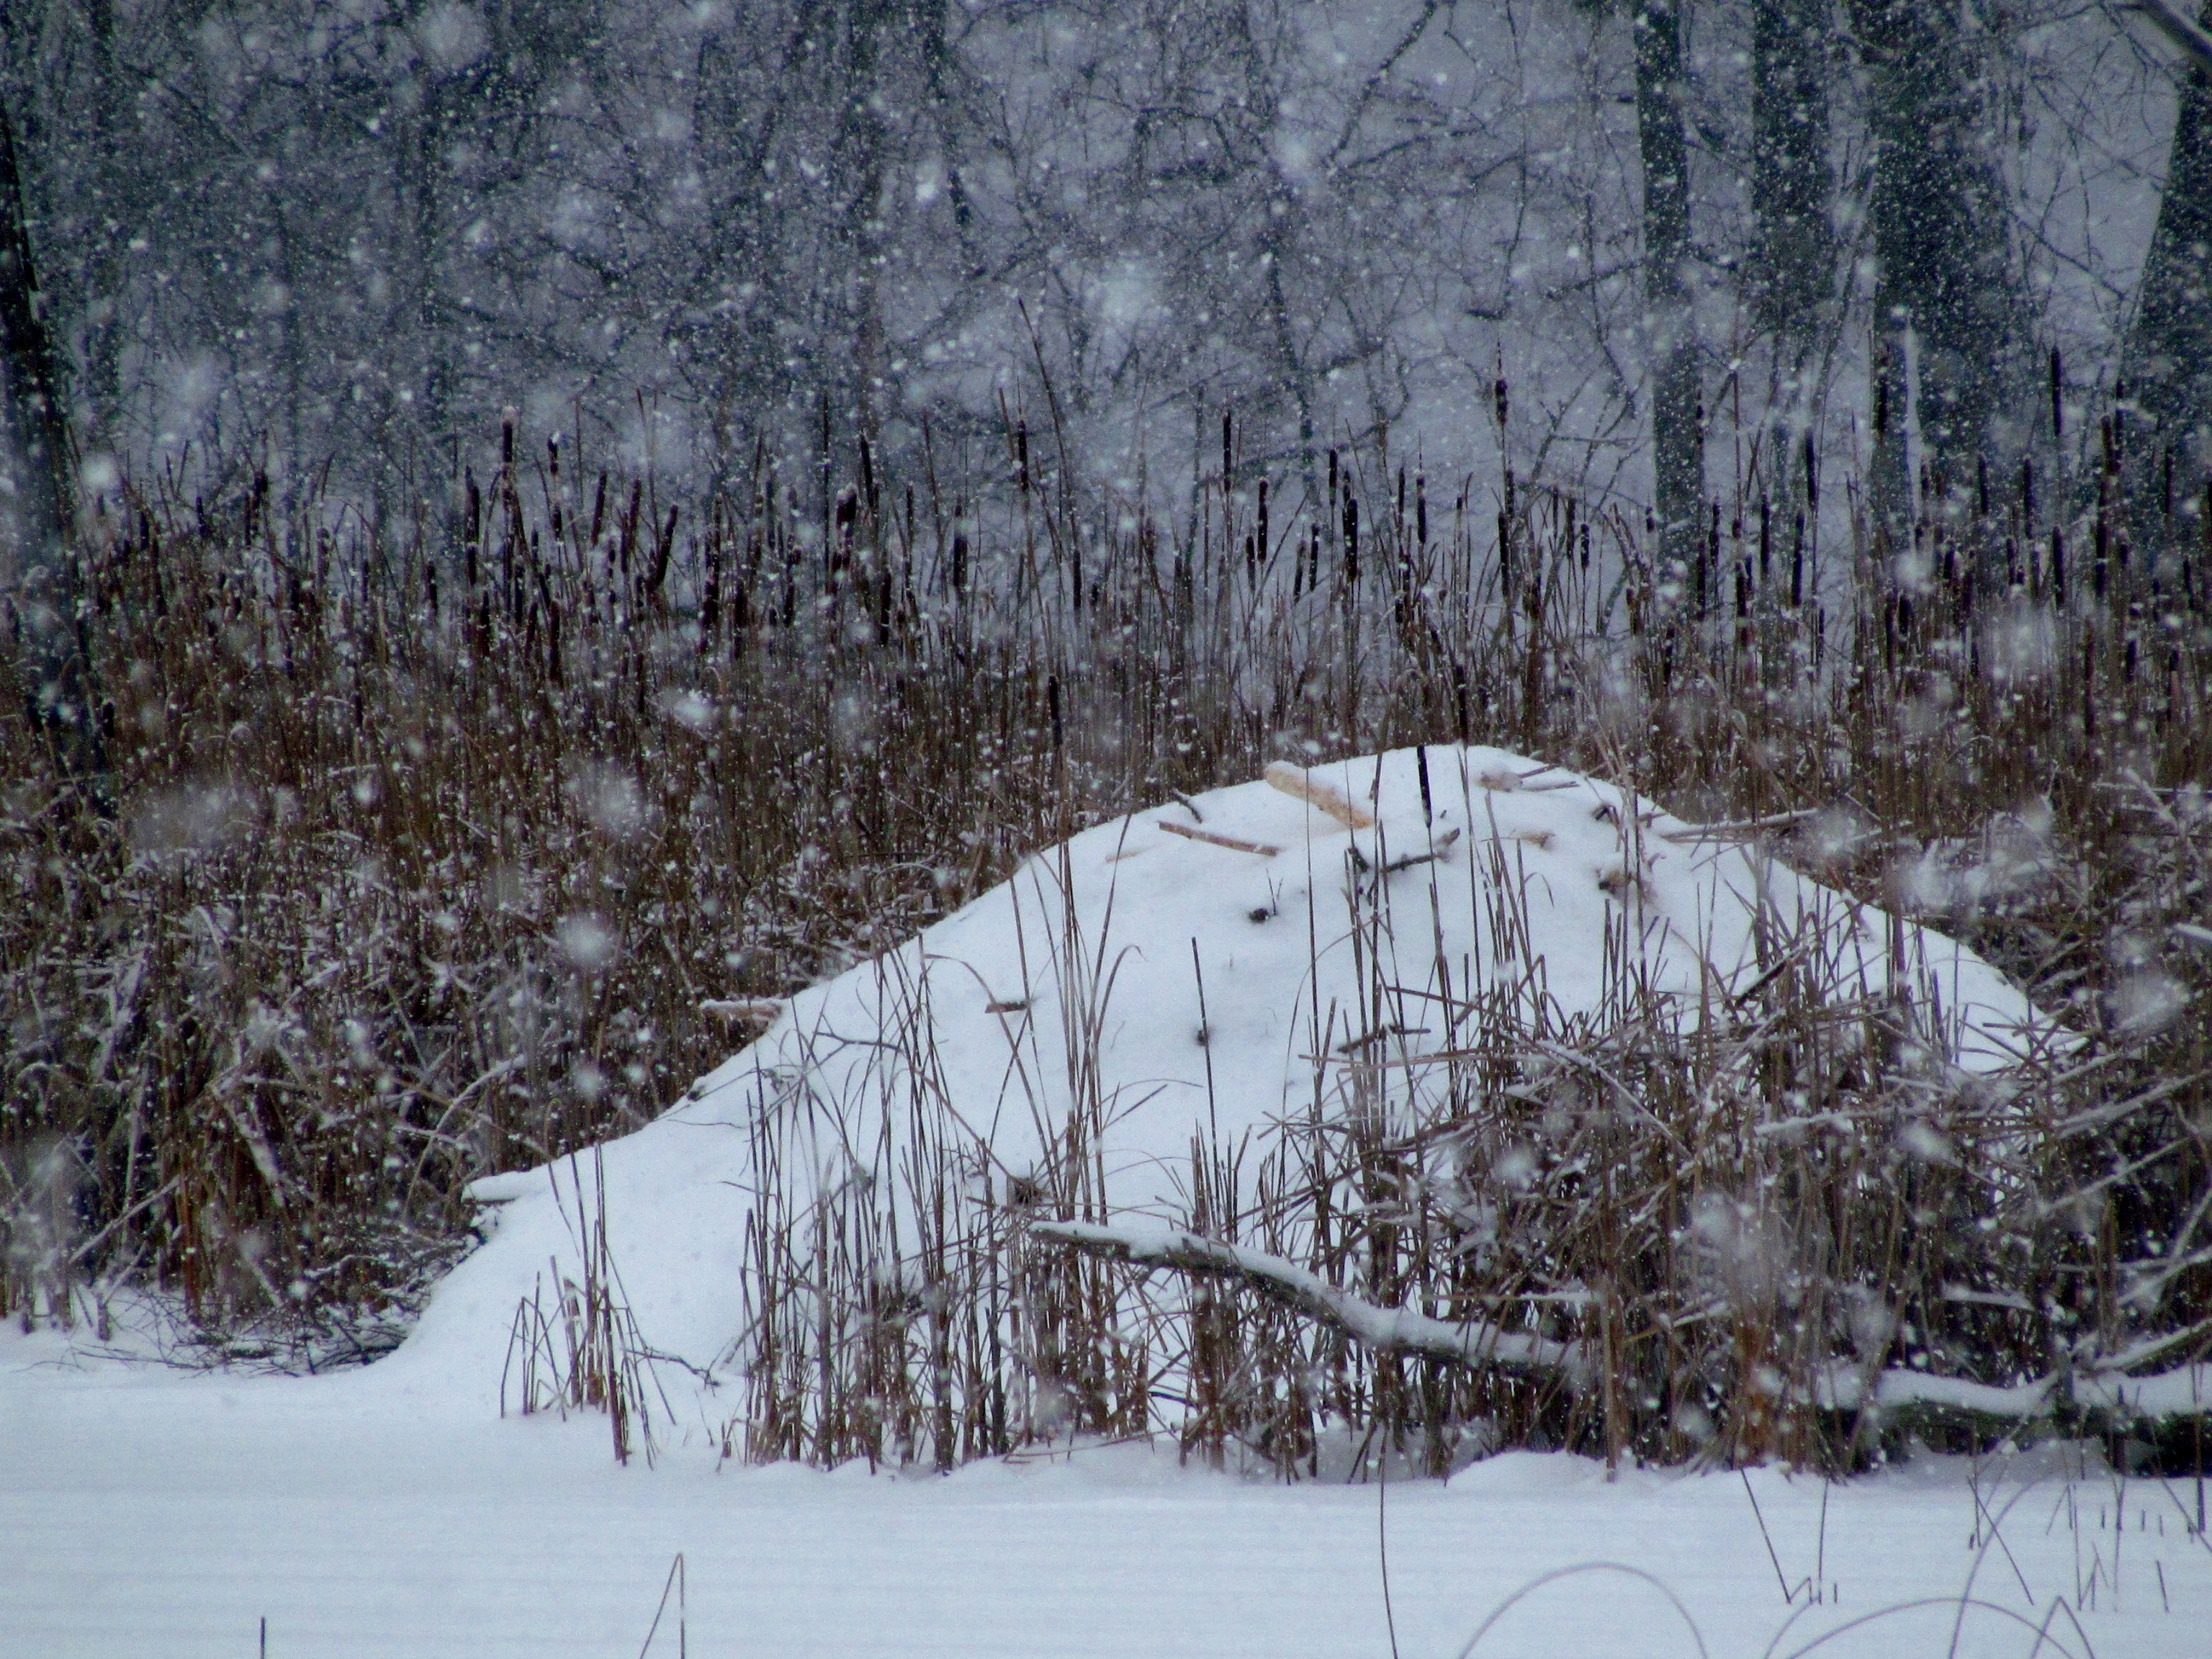 Beaver lodges are well constructed cozy winter homes for the best dam builders of Oakland County.